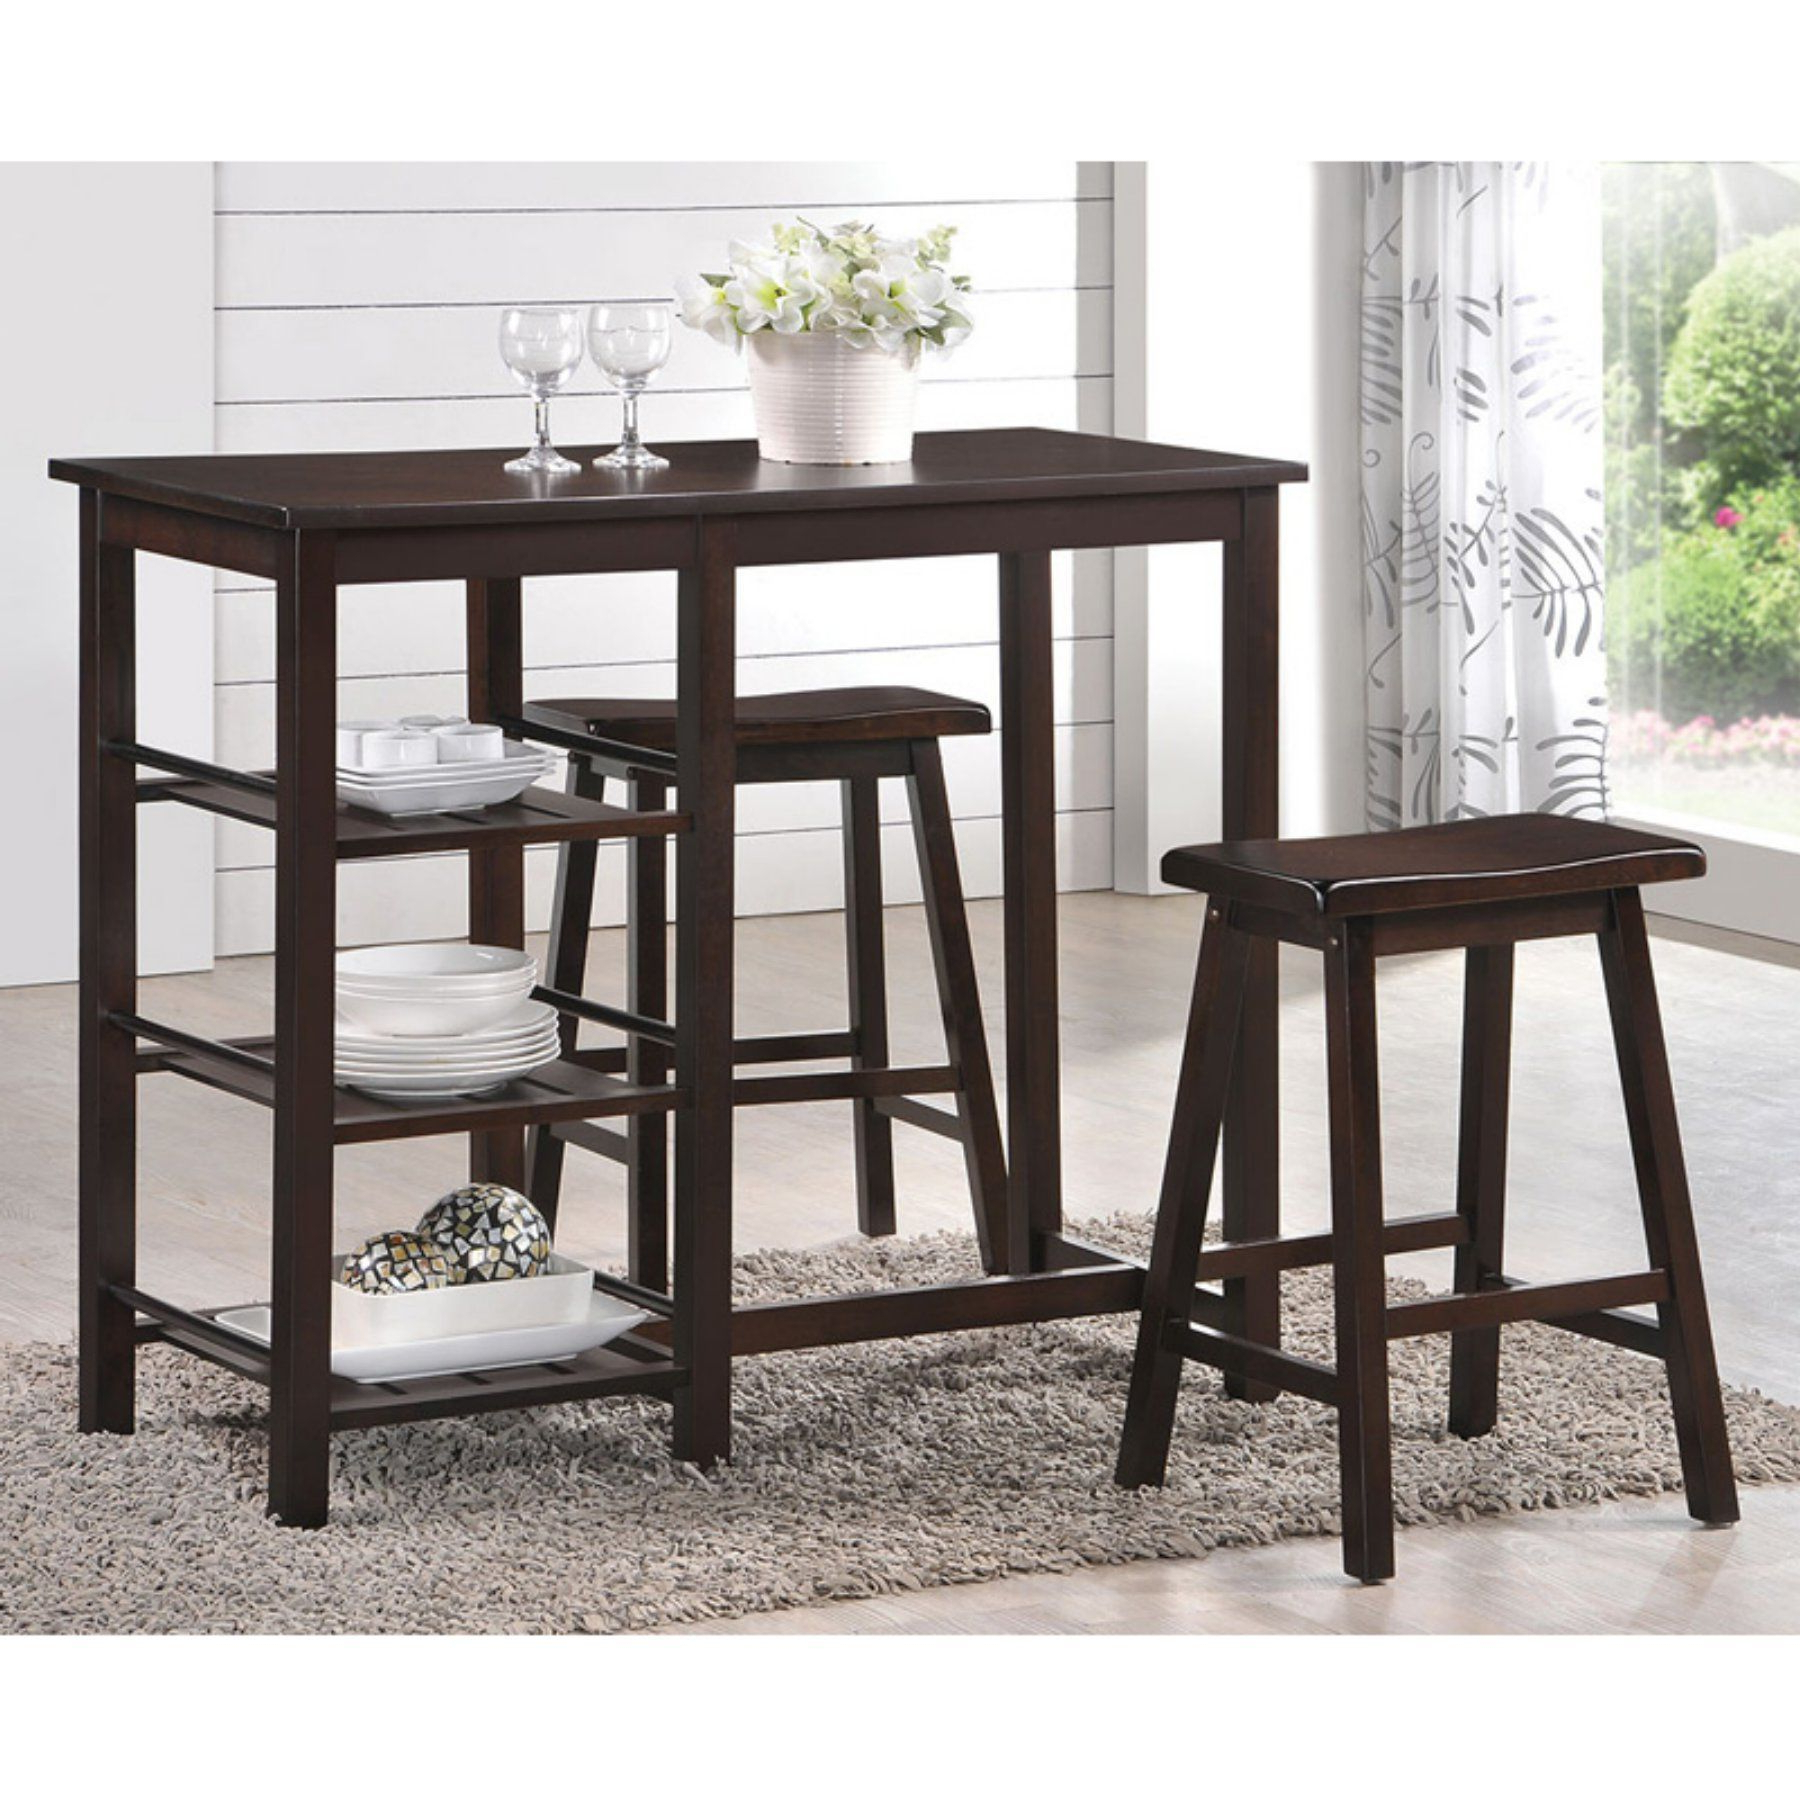 Widely Used Acme Furniture Nyssa 3 Piece Rectangular Counter Height Dining Table With Debby Small Space 3 Piece Dining Sets (View 5 of 20)